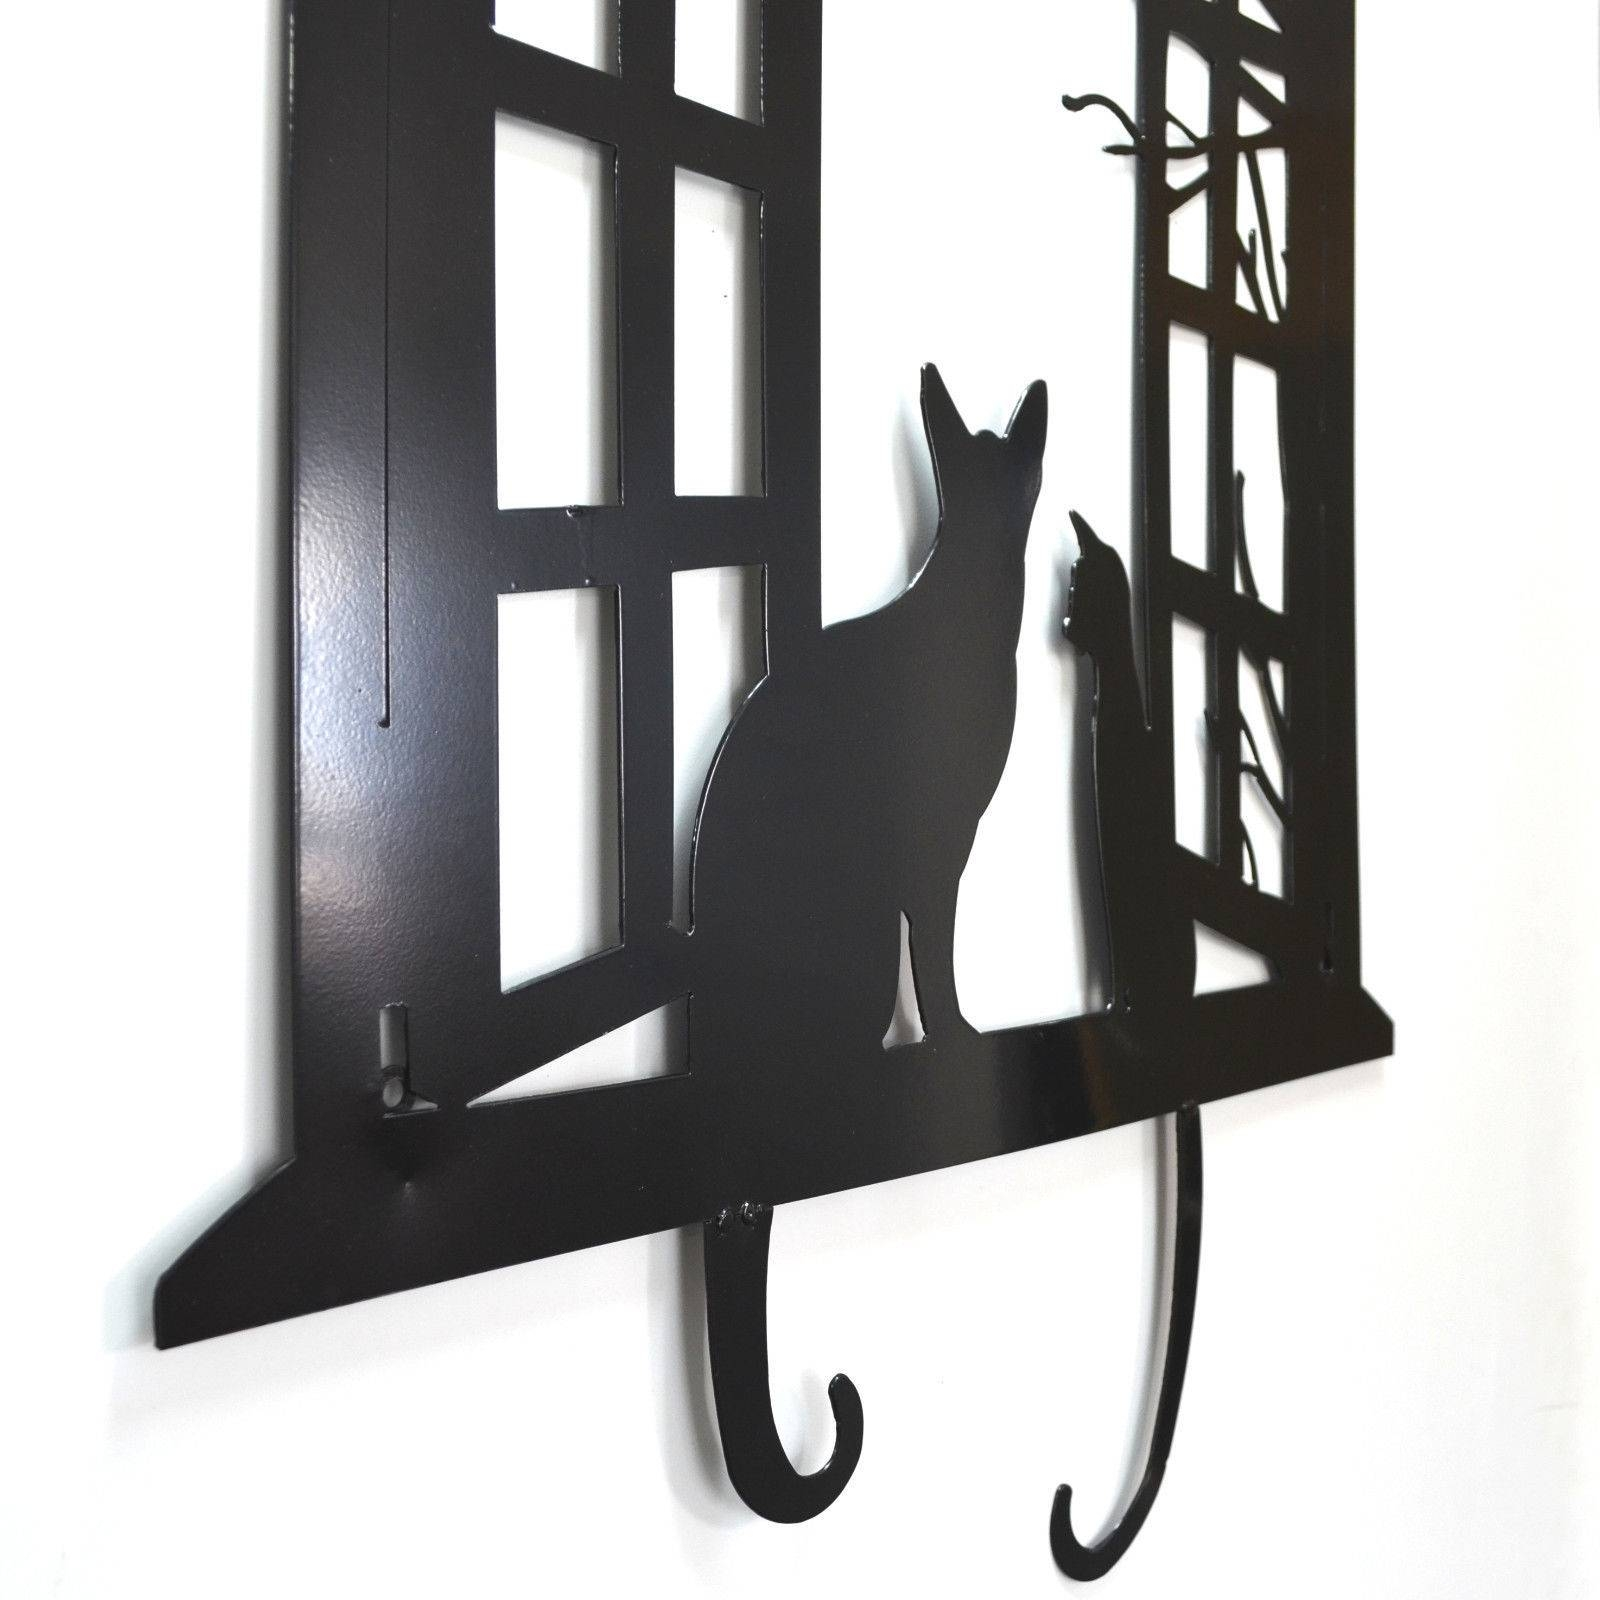 Cats In Window Lasercut Metal Wall Art 73Cm With Regard To Most Recent Cat Metal Wall Art (View 11 of 20)